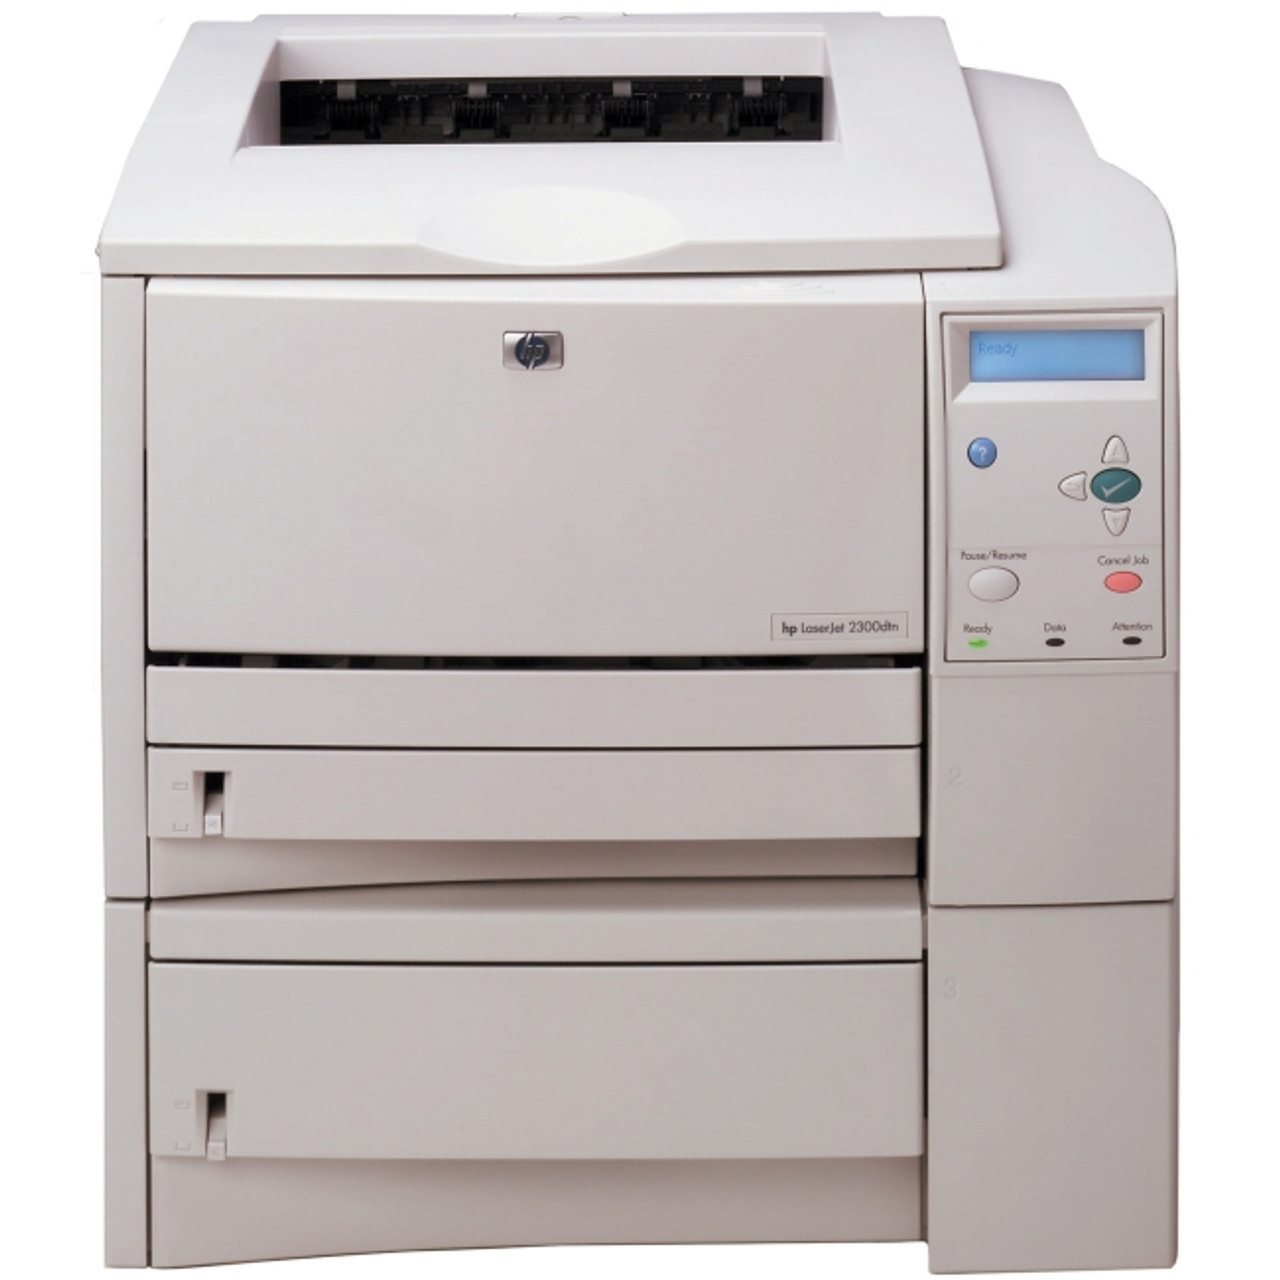 HP LaserJet 2300DTN - Q2476A - HP Laser Printer for sale